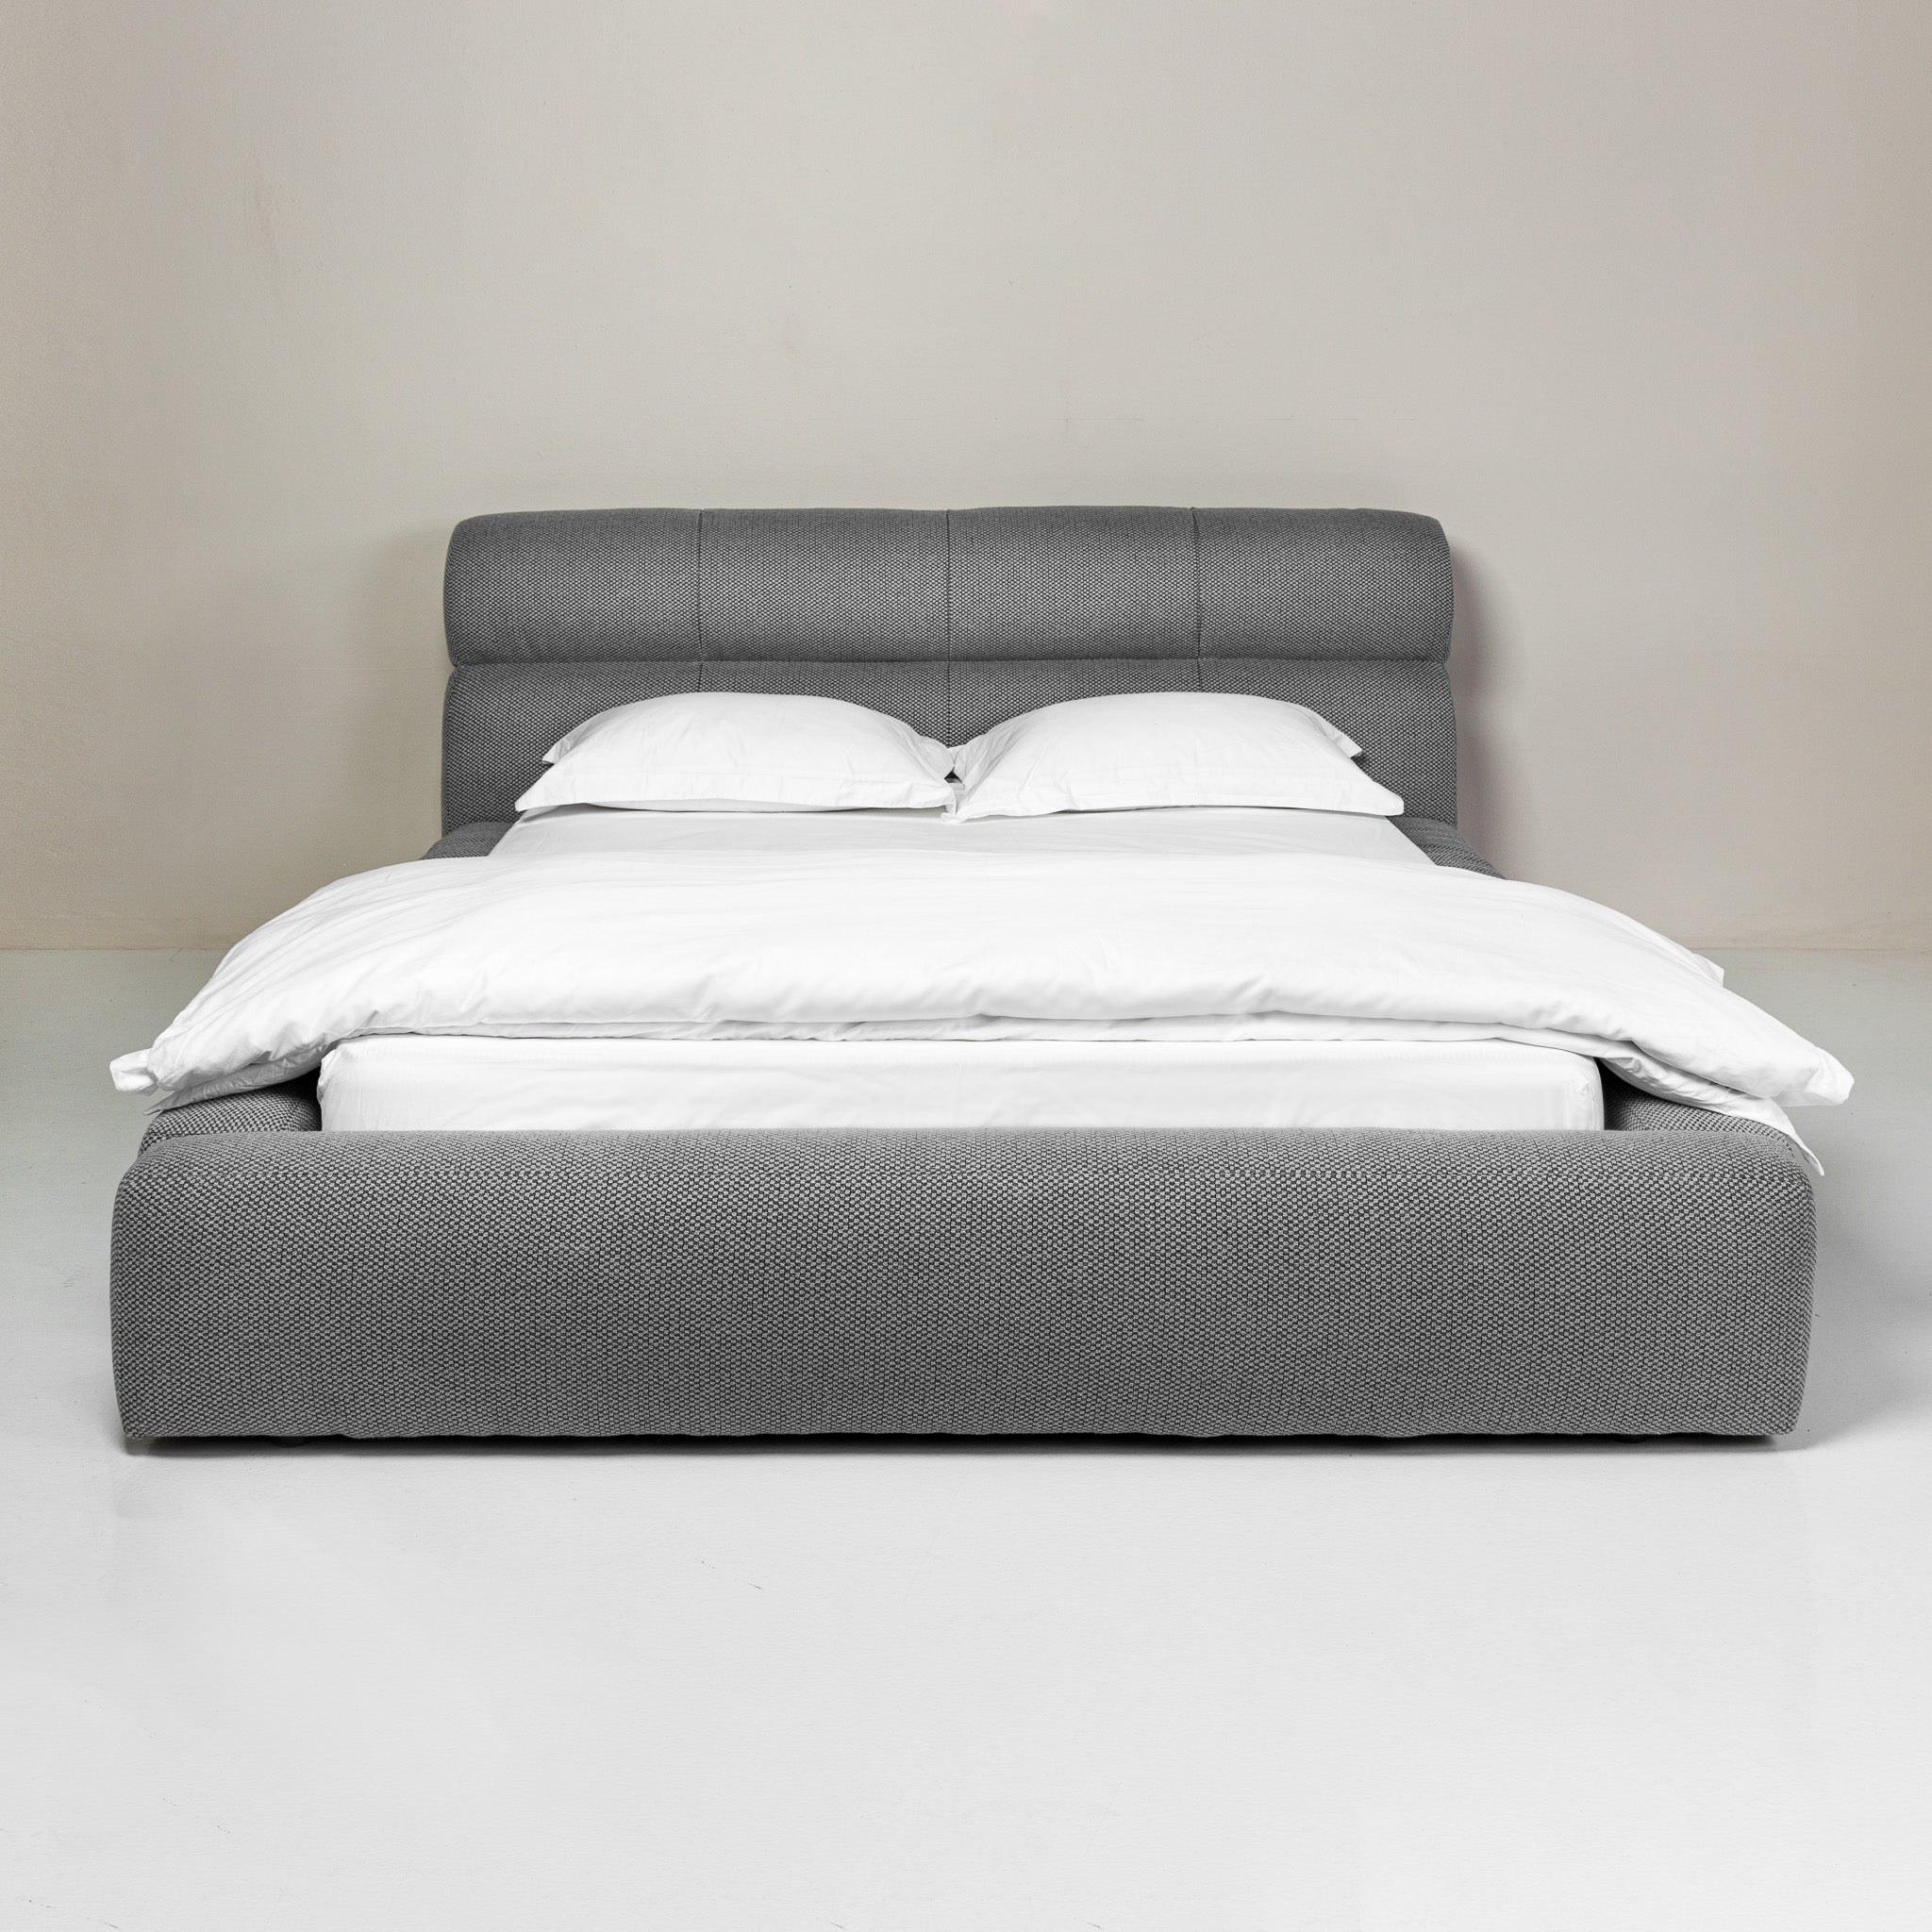 Virgo Bed - Atmosphere Furniture